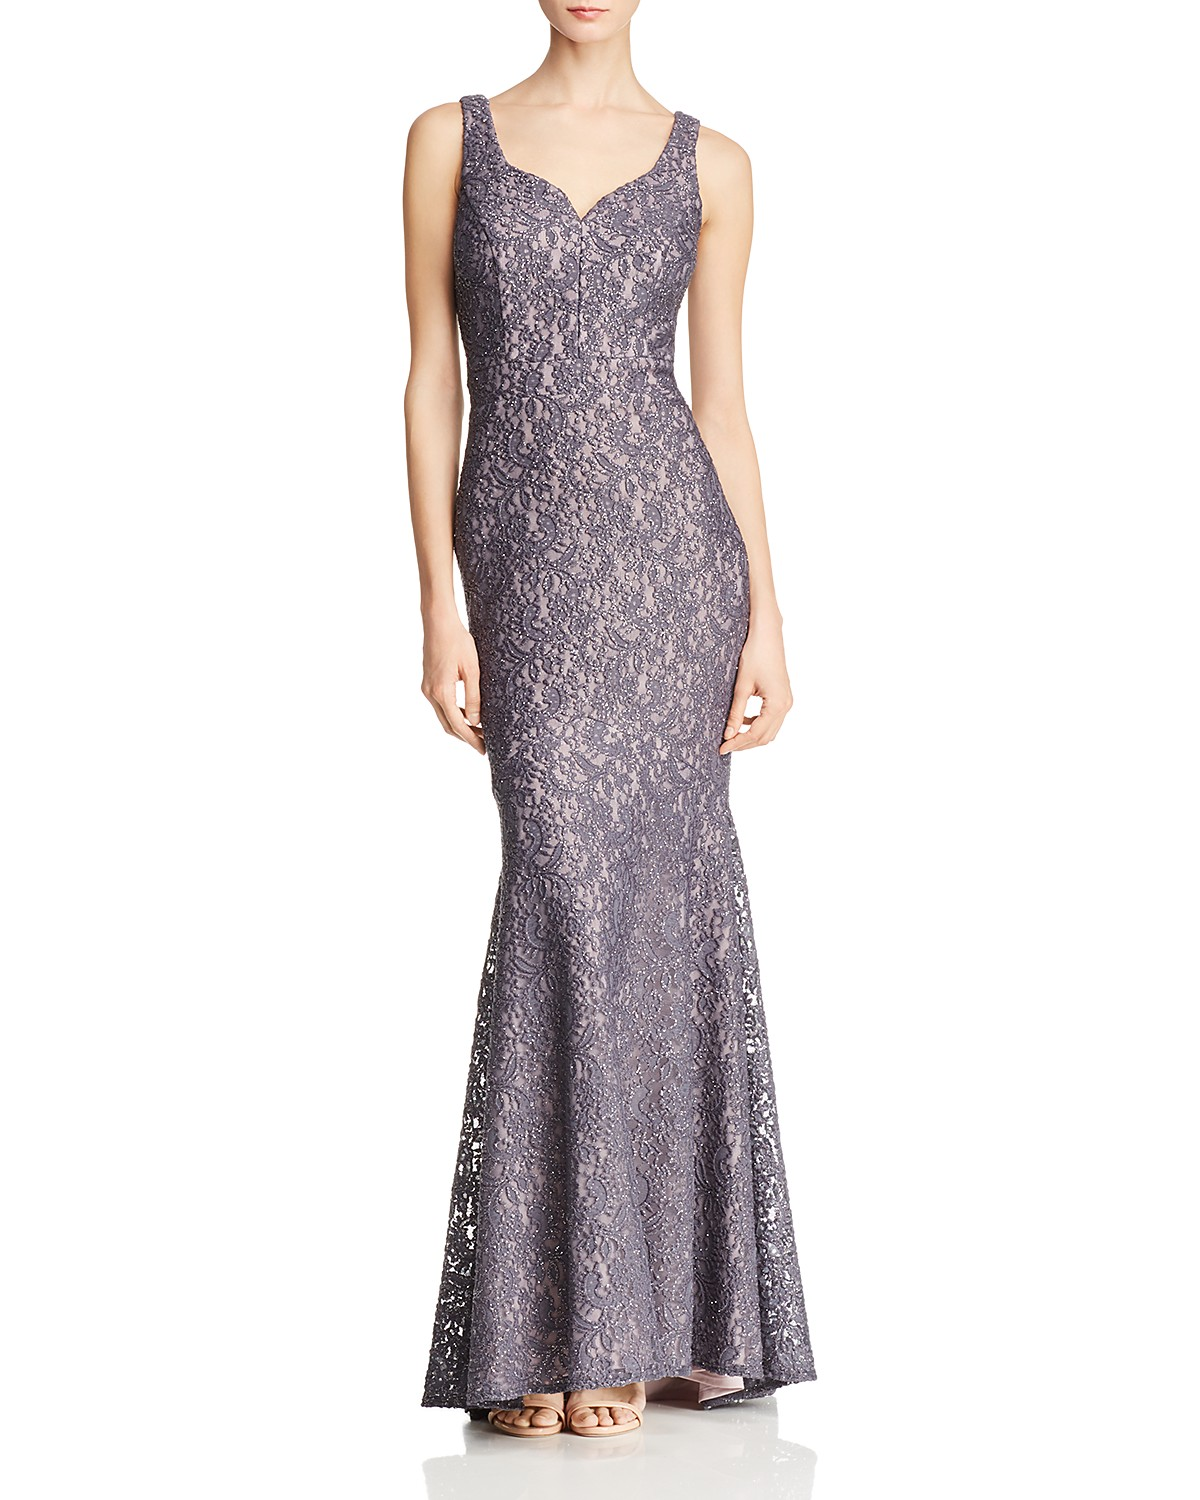 AQUA Shimmer Lace Gown - 100% Exclusive | Bloomingdale\'s